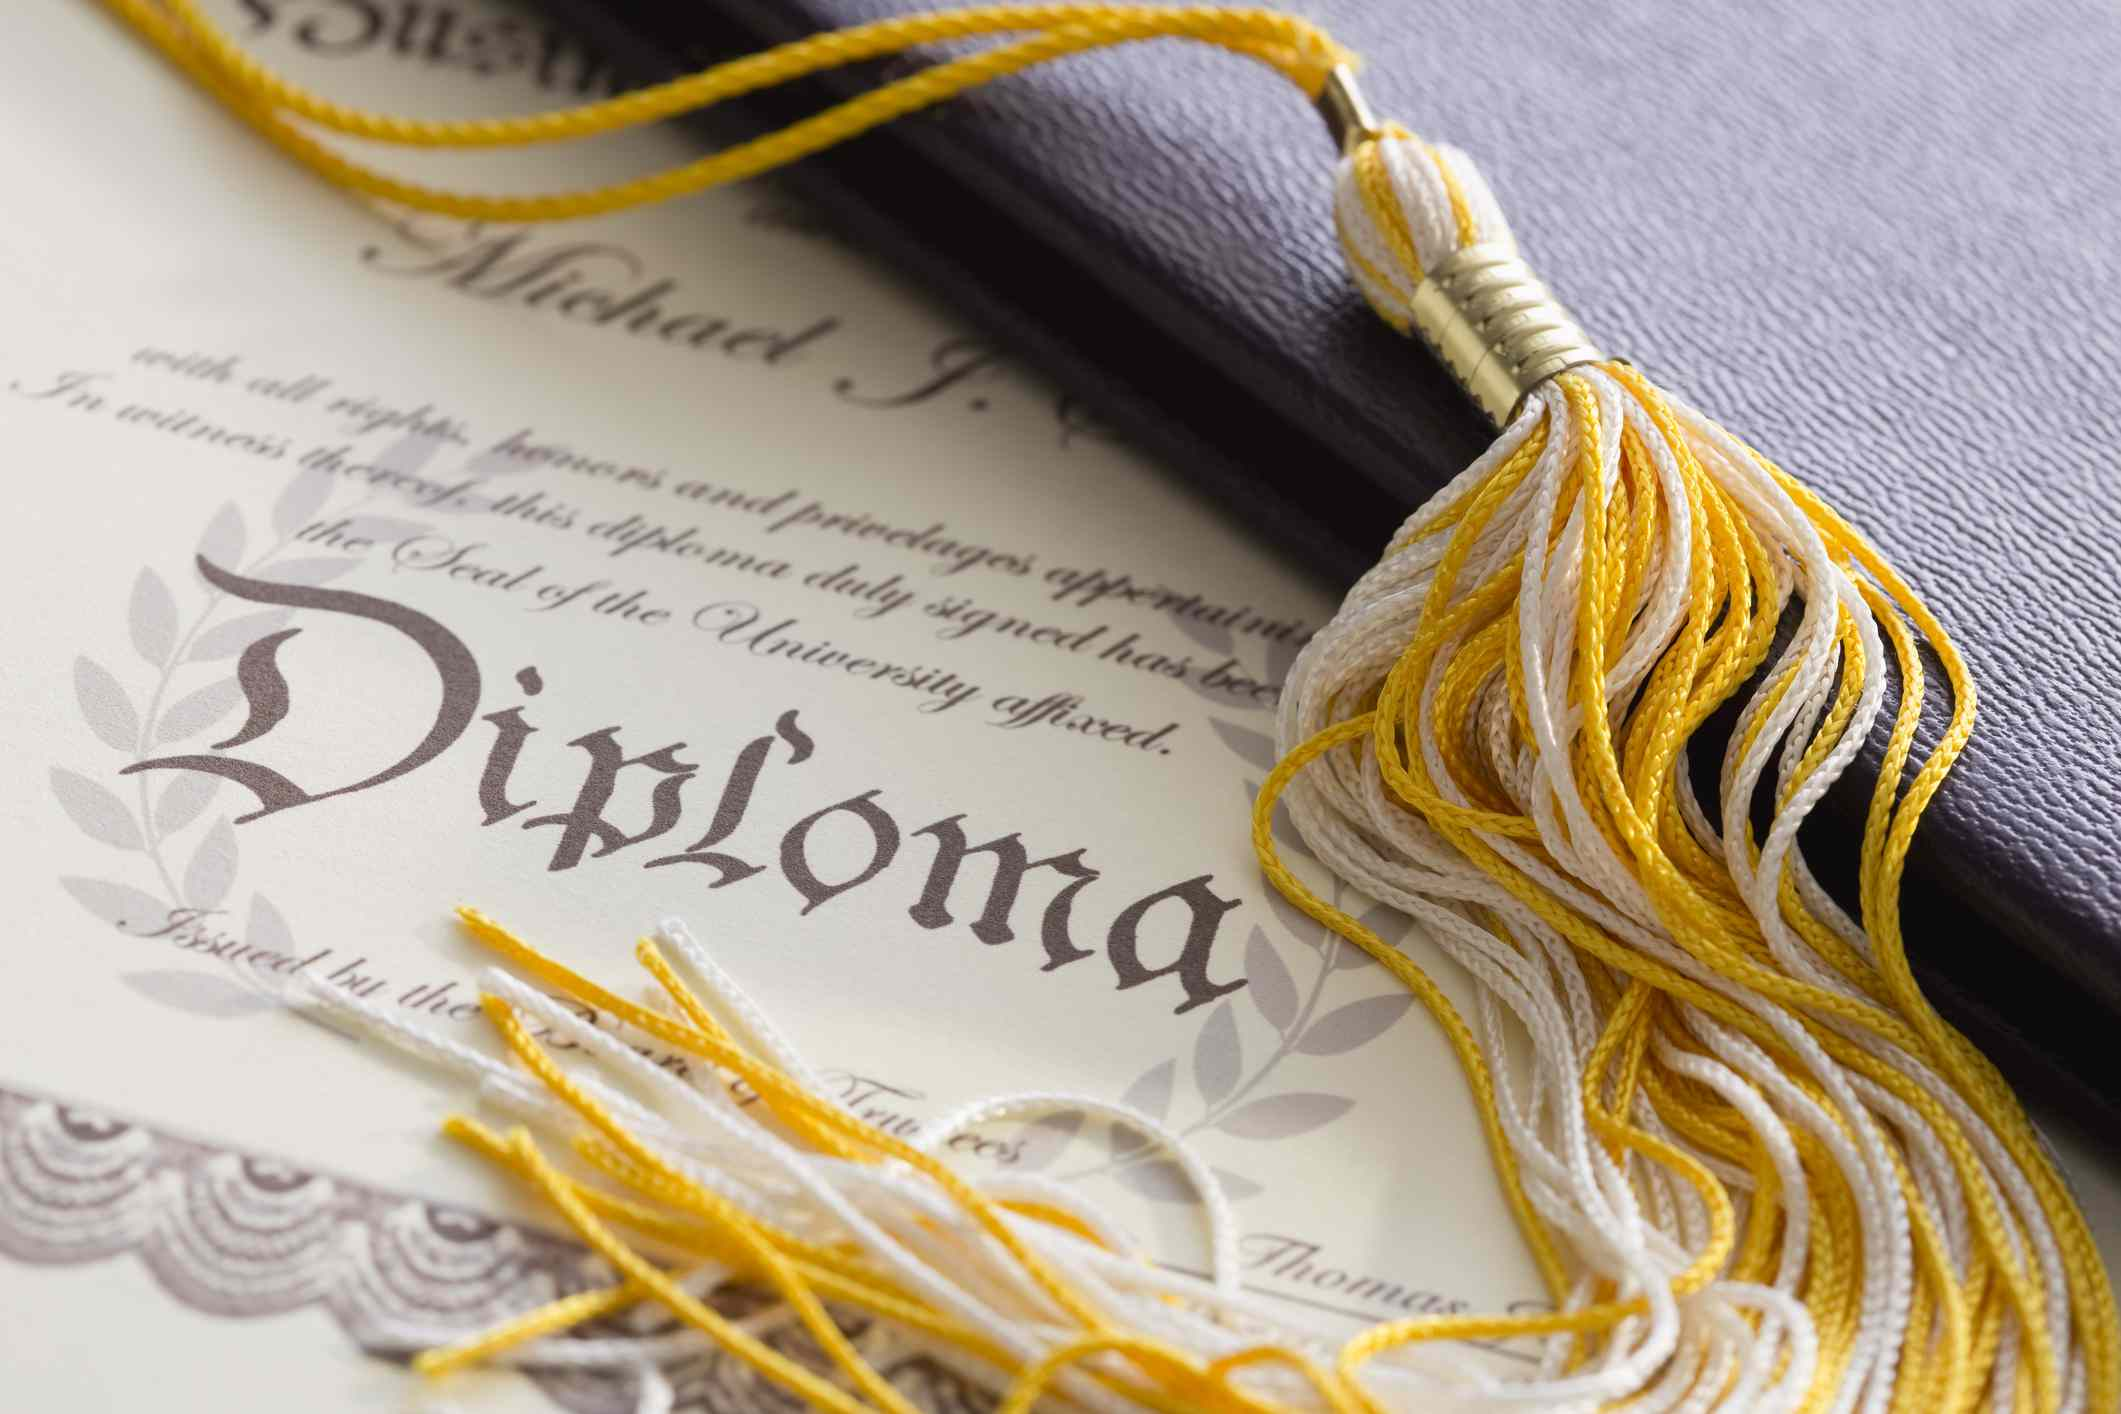 Close-up view of graduation tassel and diploma for sales and marketing